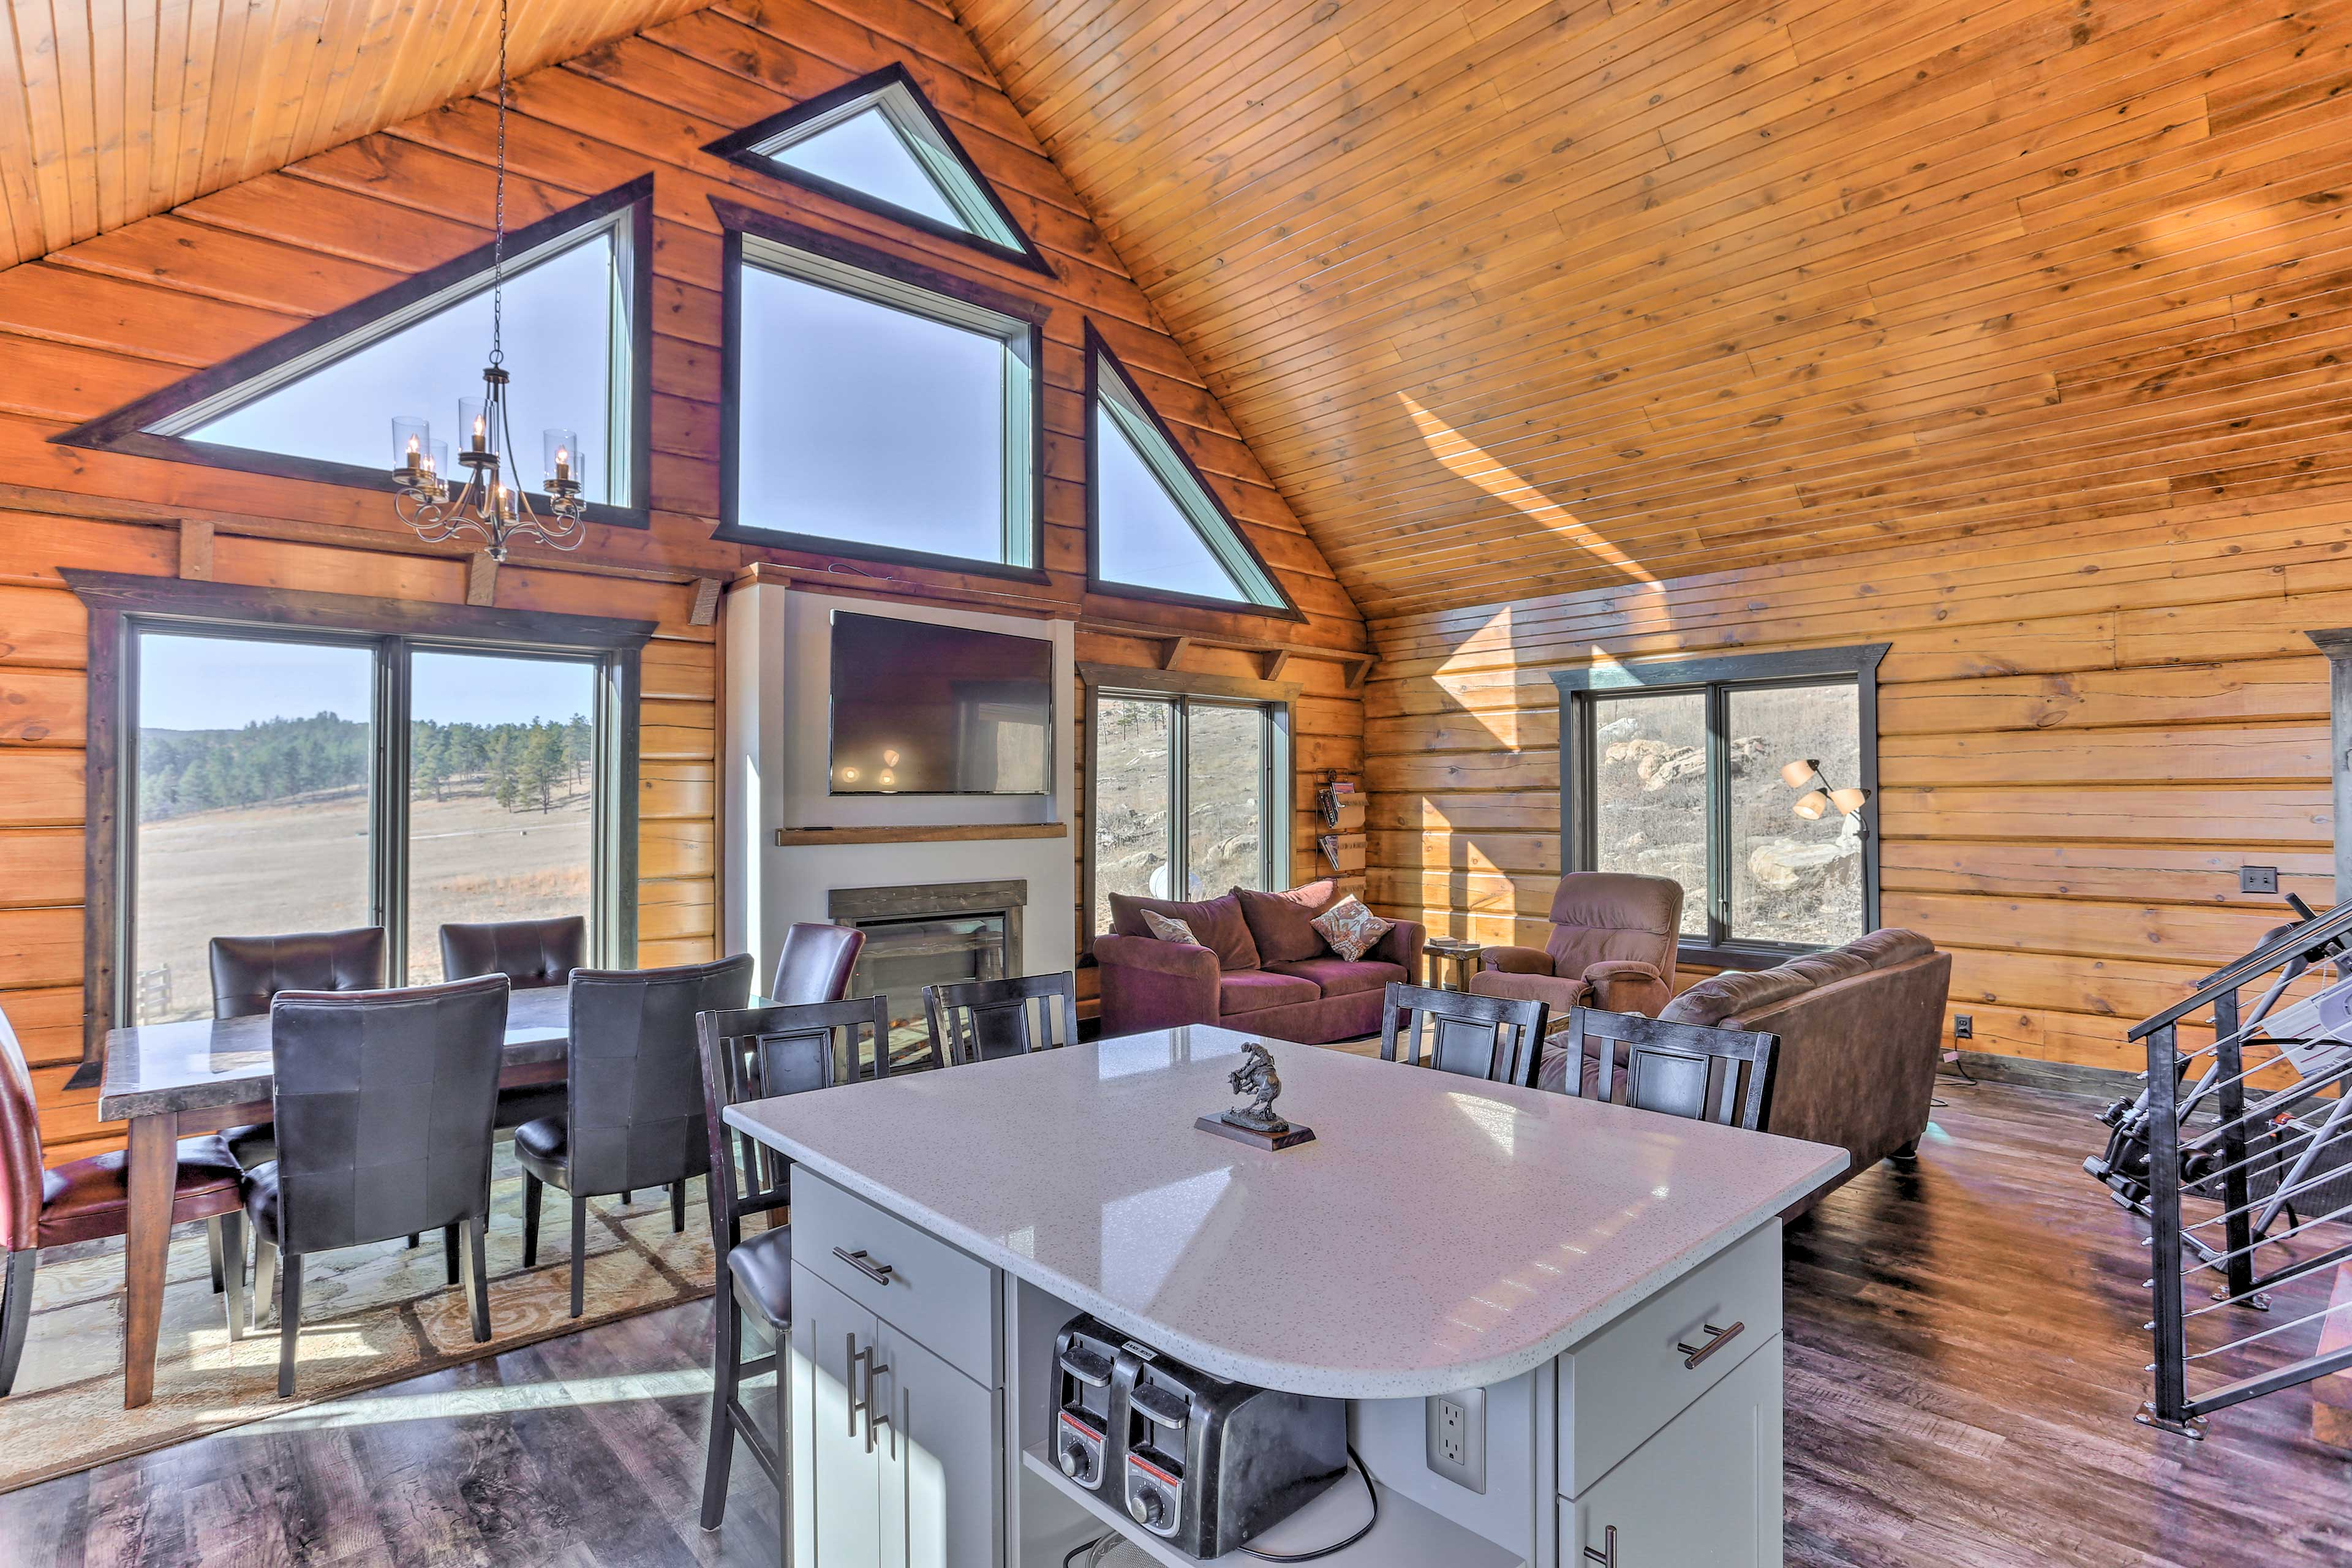 Dine at the 6-person table, or stay cozy with the electric fireplace.